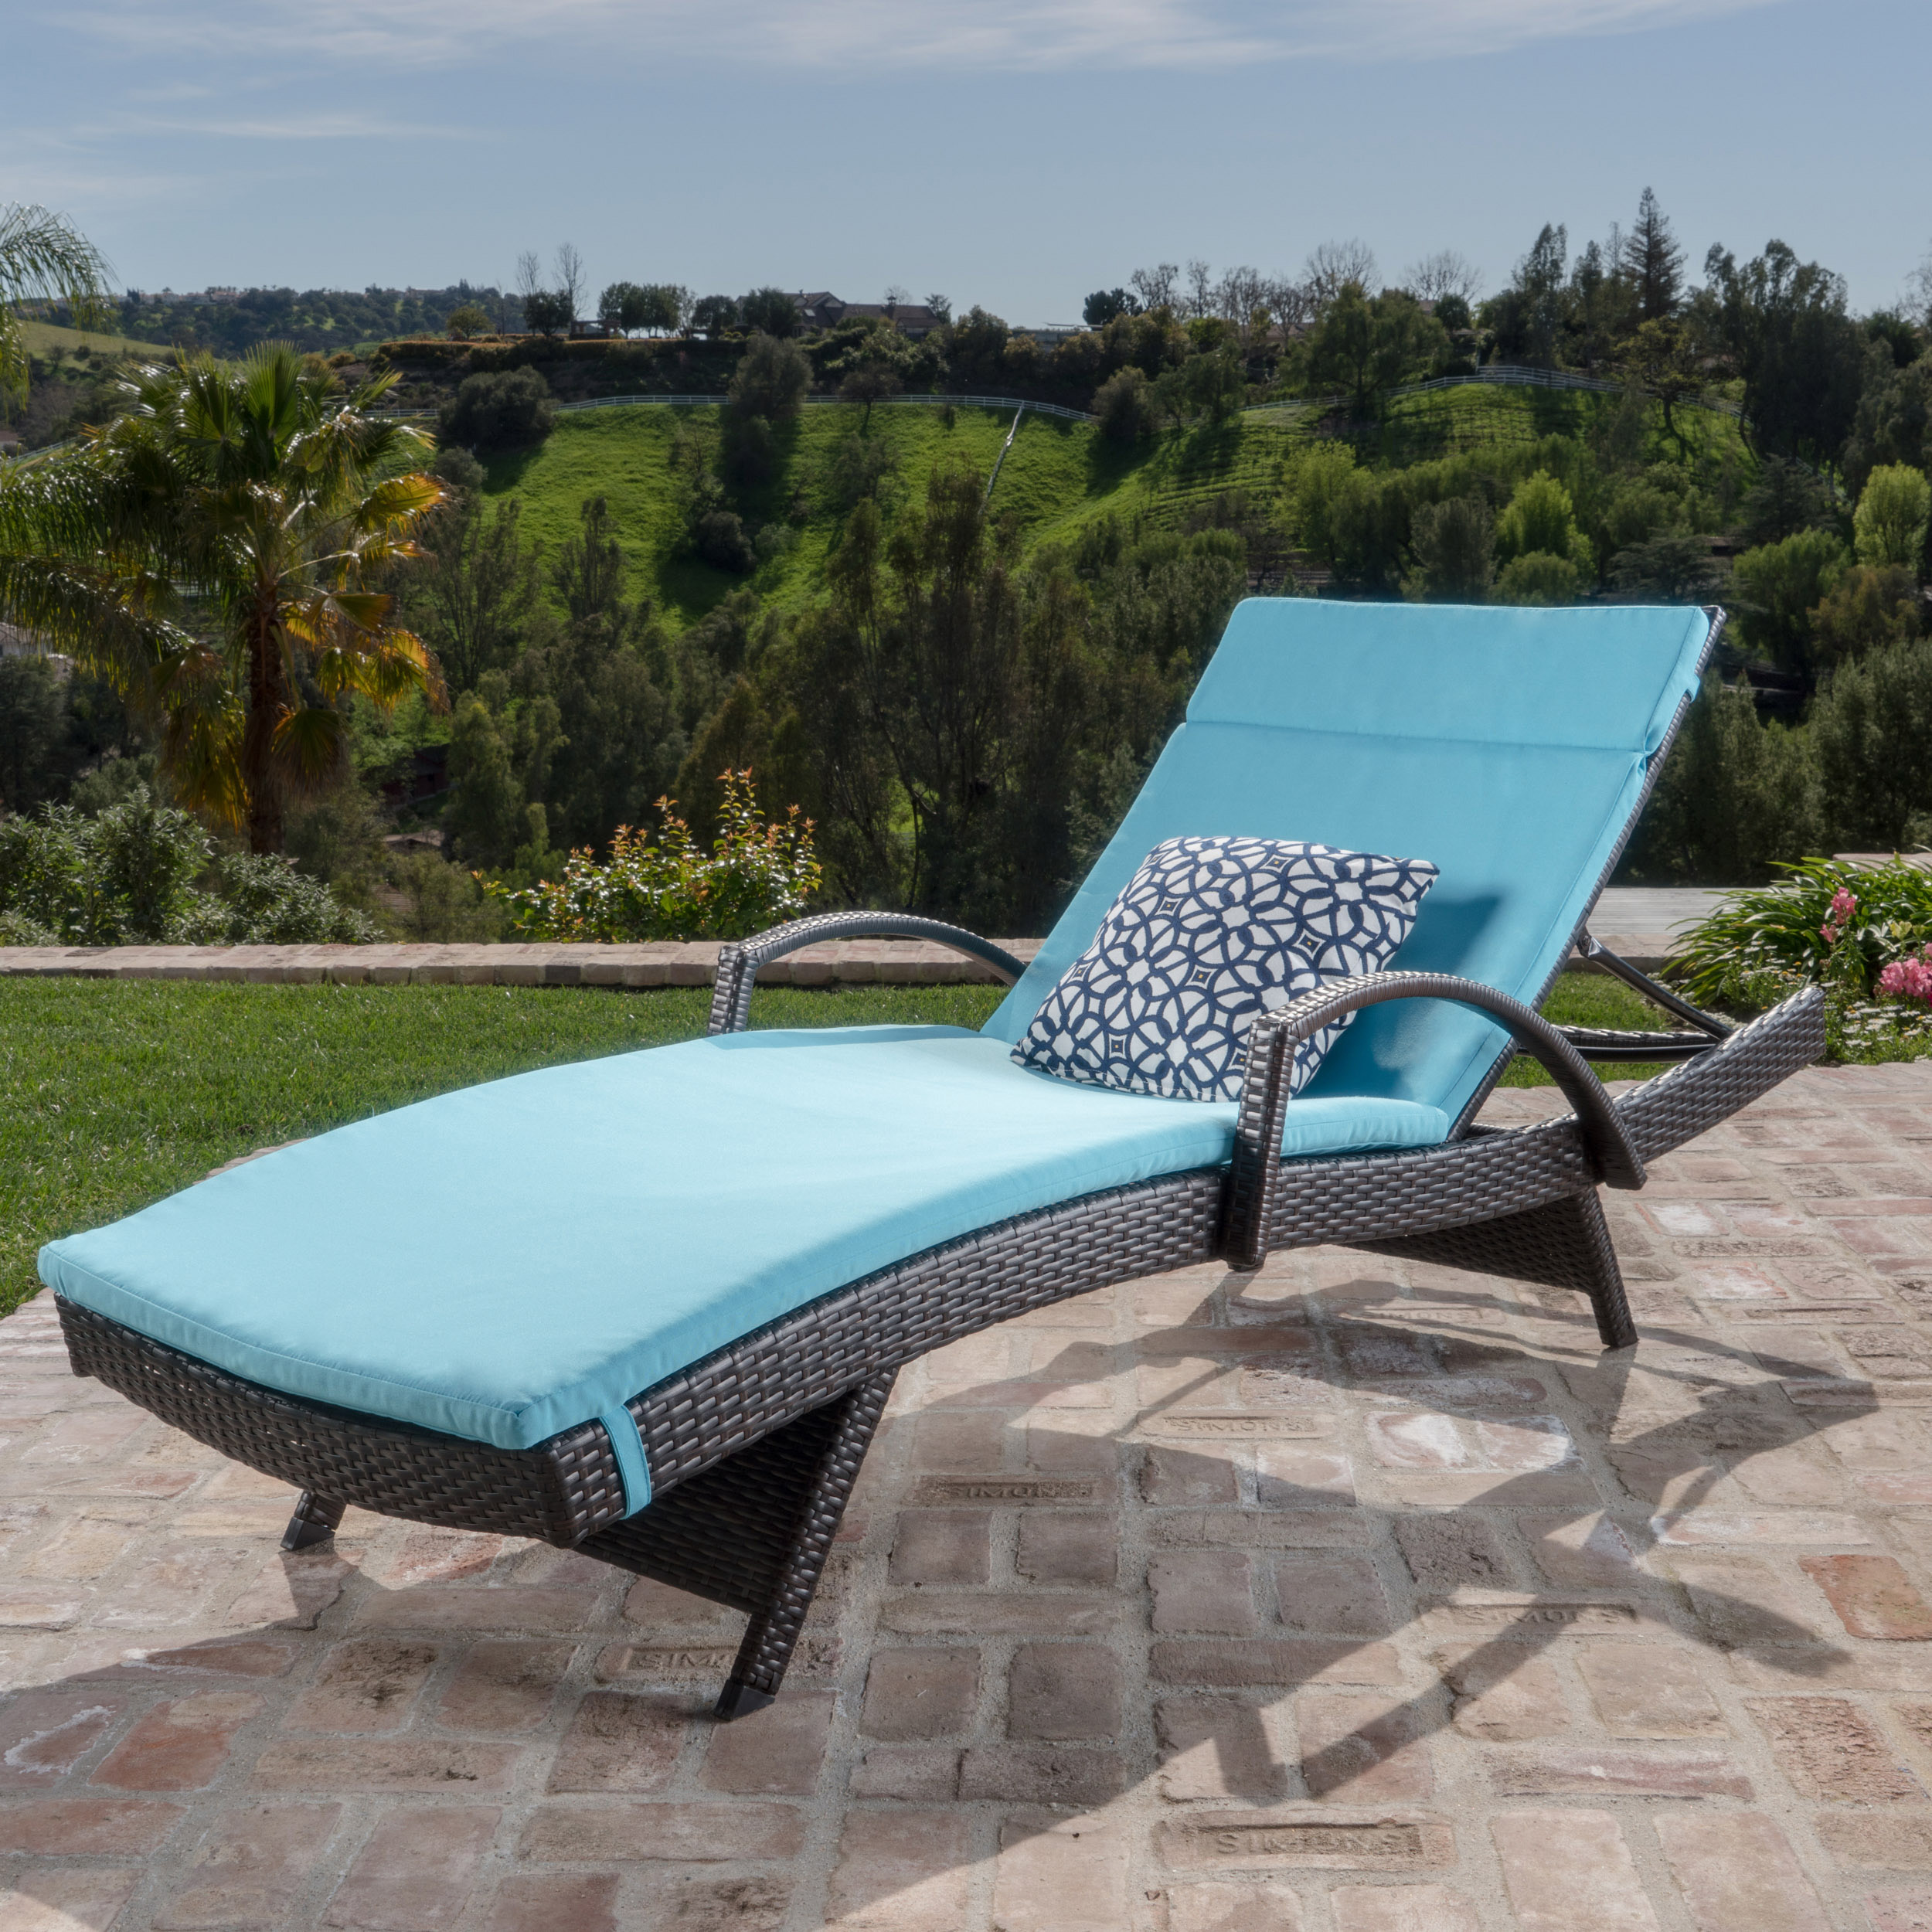 Brookside Outdoor Wicker Adjustable Chaise Lounge with Arms with Blue Cushion